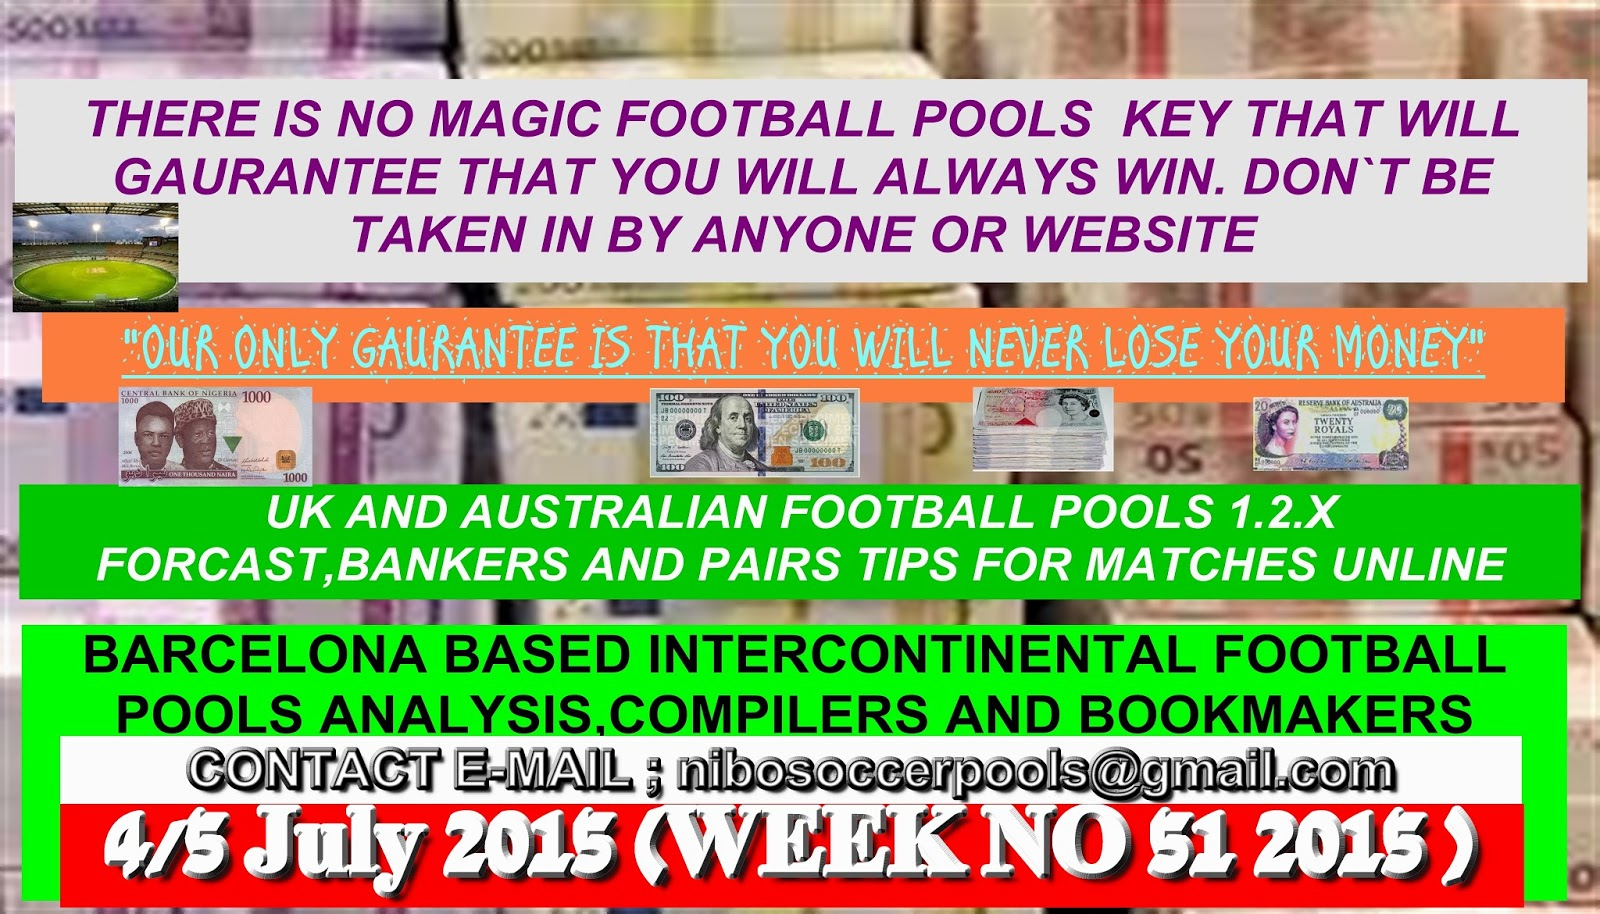 Week 51 australia pool result